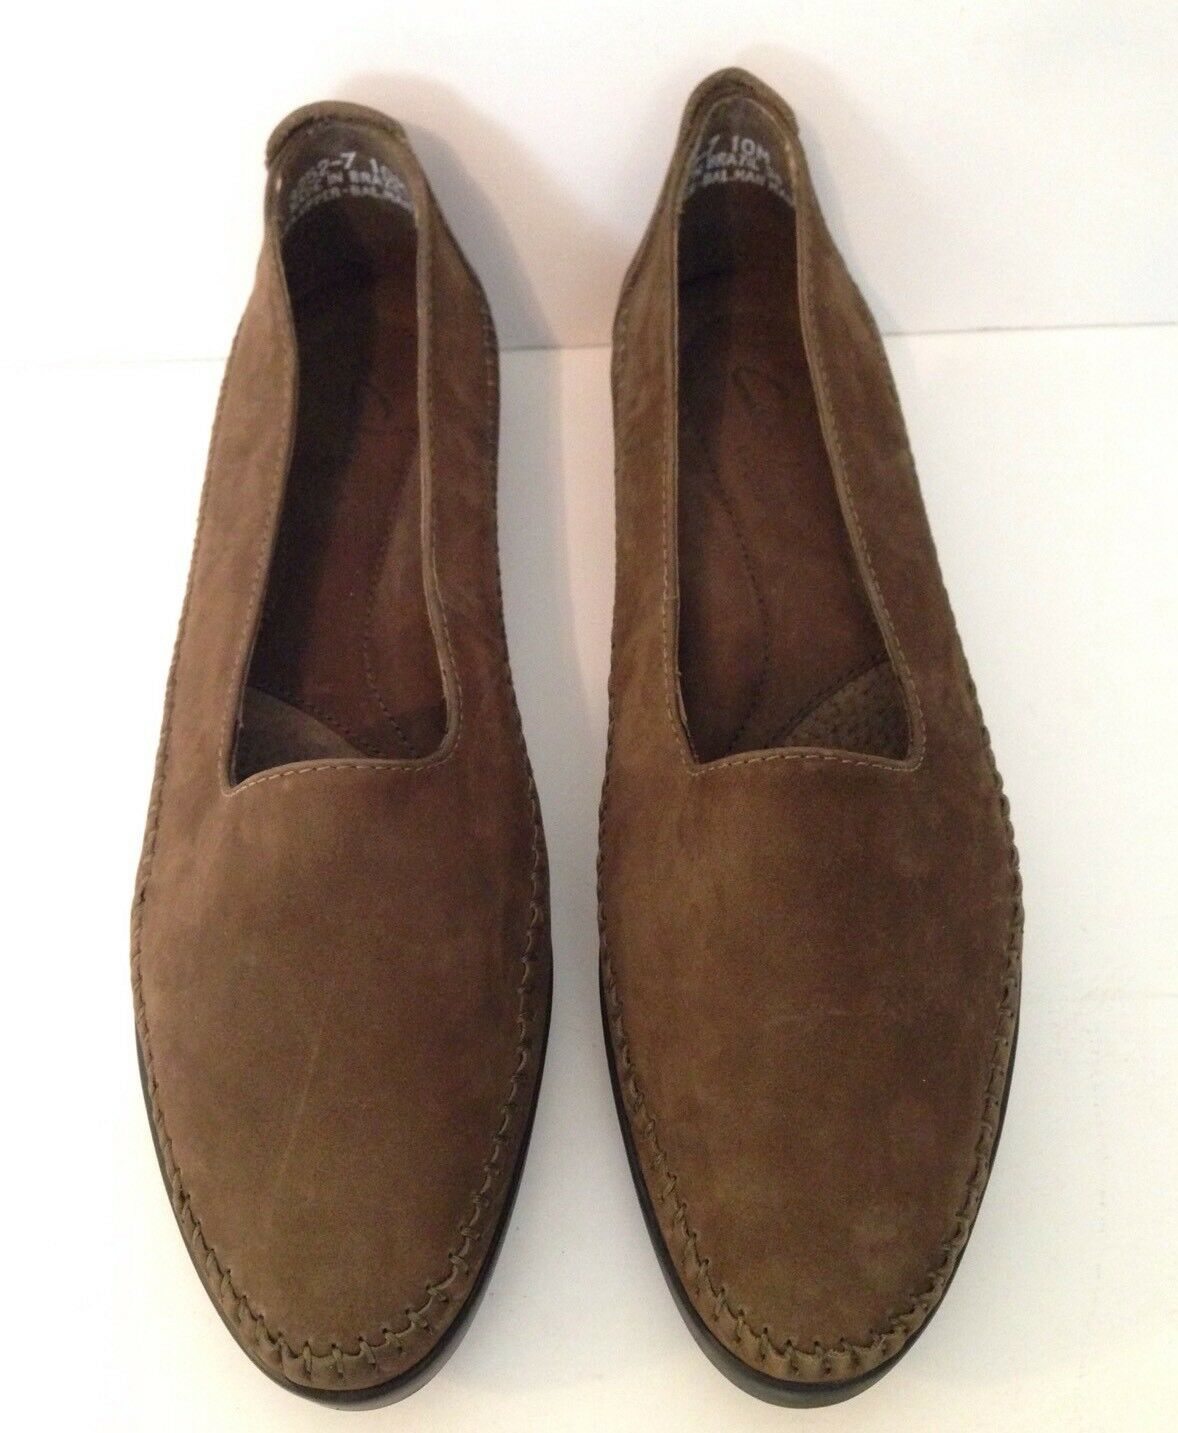 CLARKS of England Women's Brown Suede Leather Slip On Loafers shoes Size 10M EUC